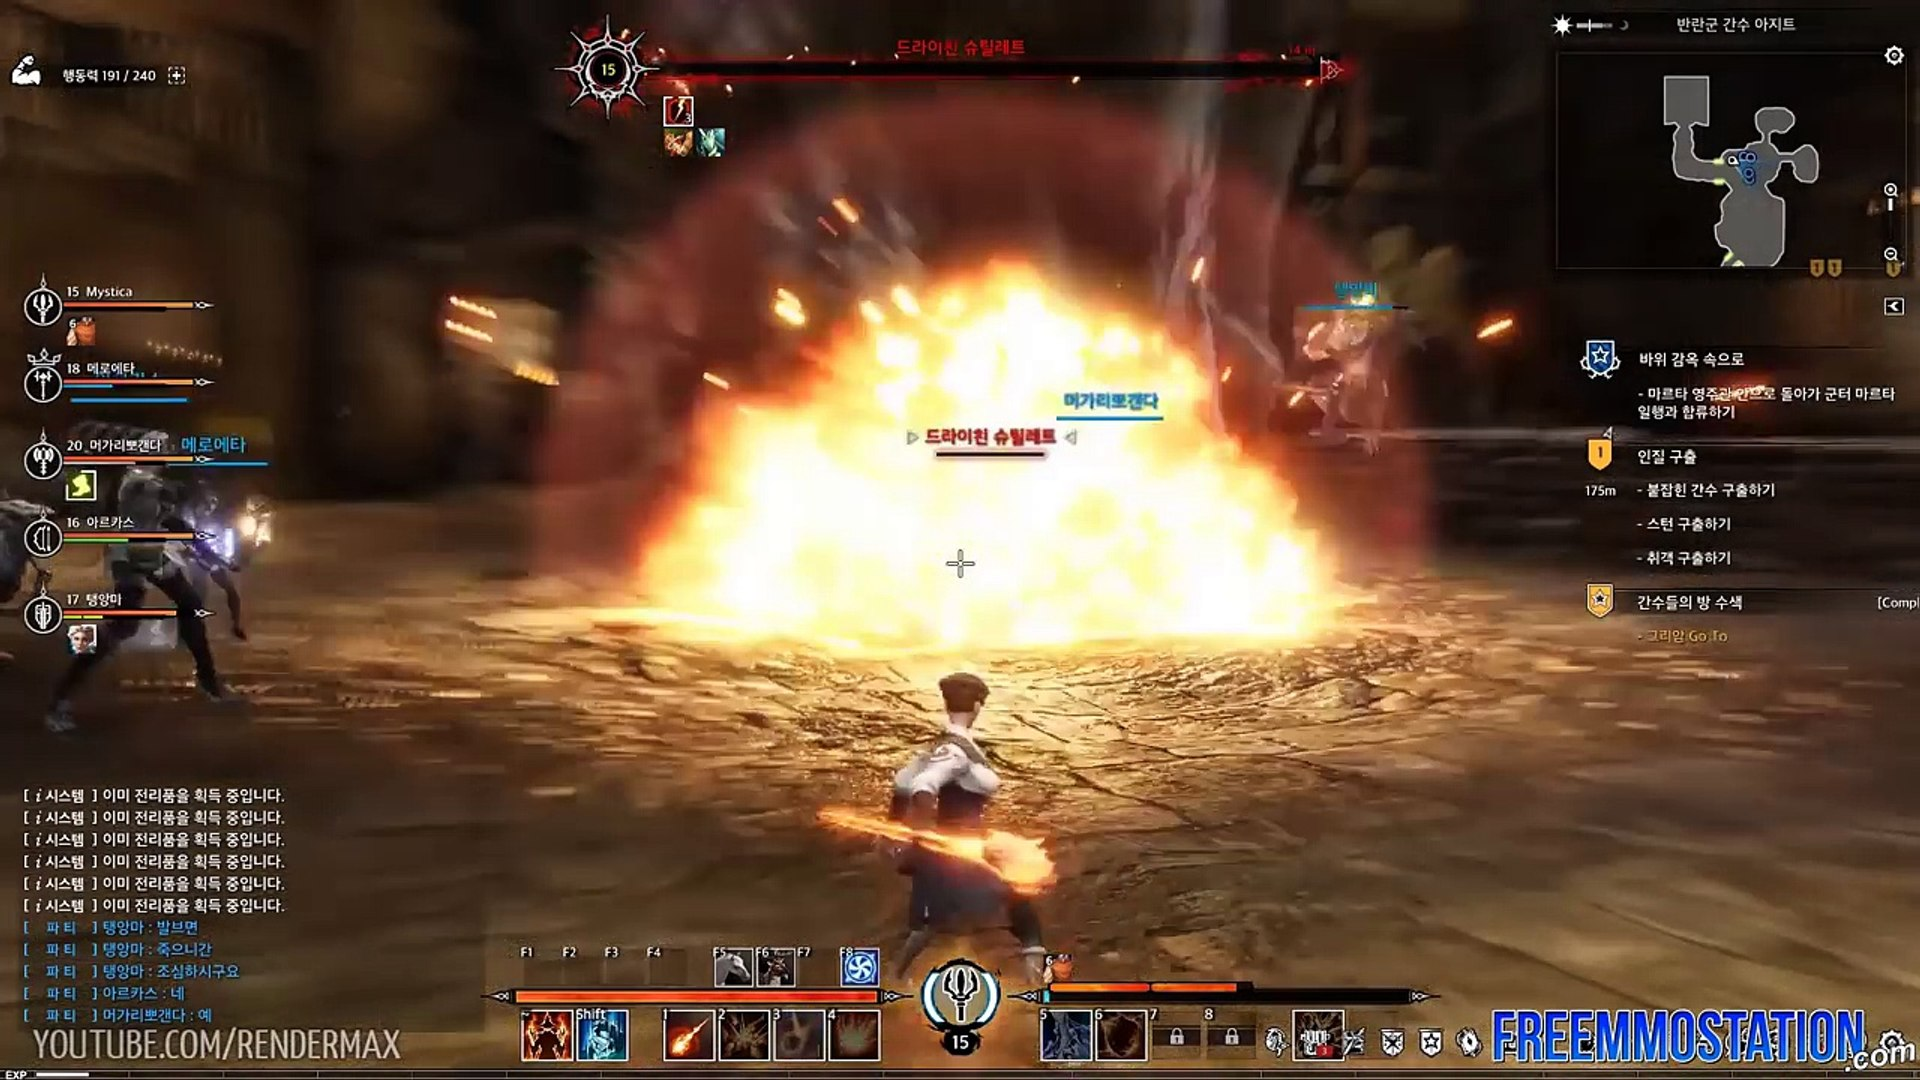 Bless Online: Embers in the Storm: Mage Gameplay lvl 15 Dungeon Party (Final Test F2P Korea)